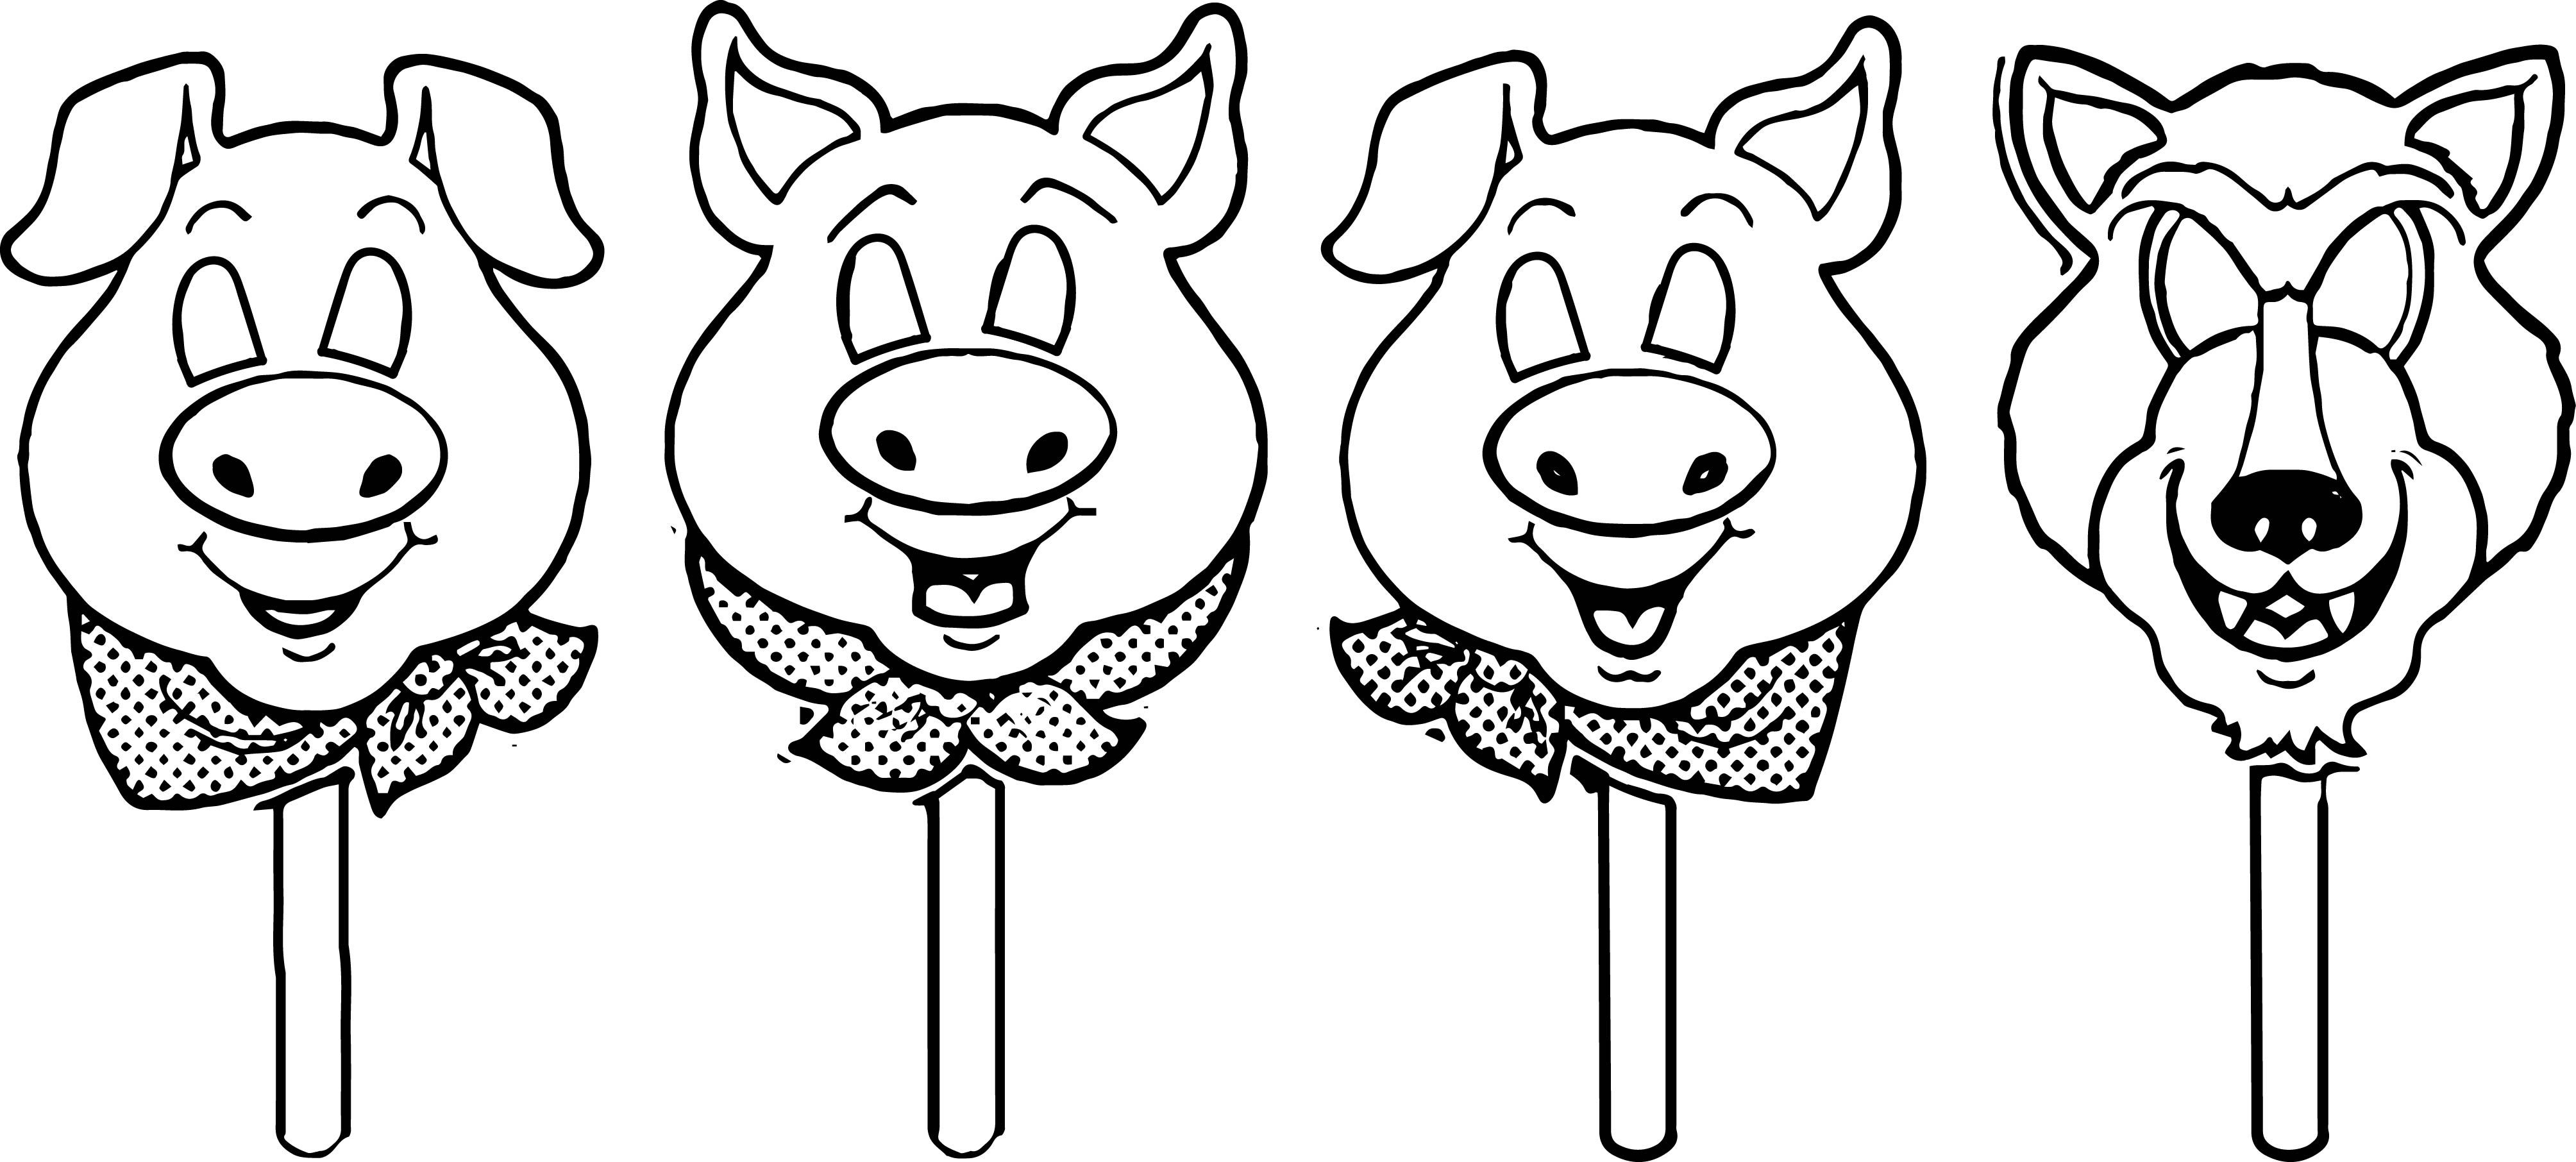 Image result for three little pigs mask printable | Preschool ...